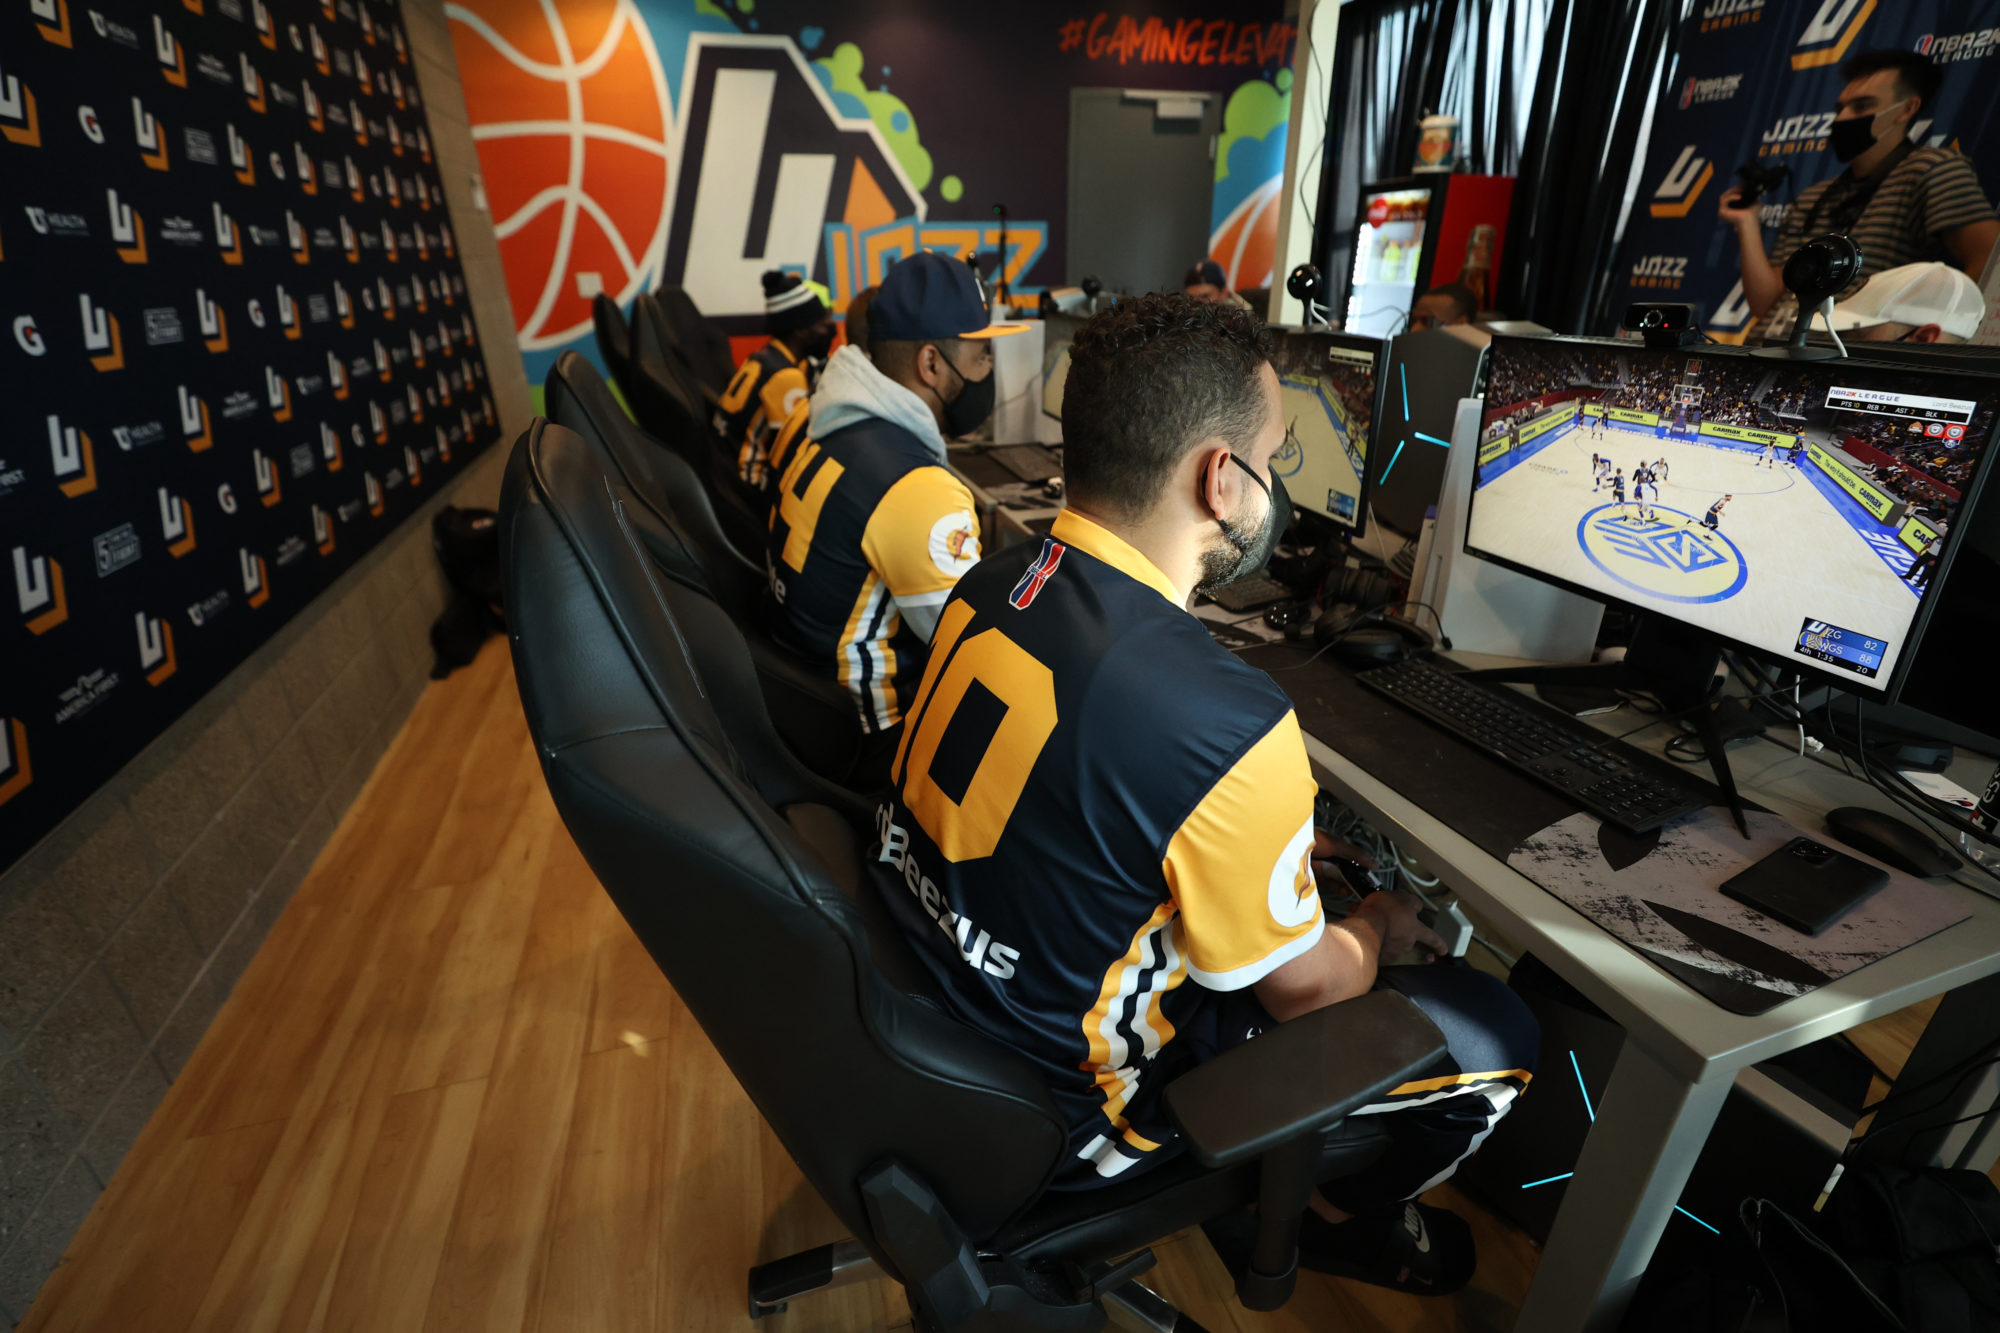 The Jazz Gaming league is having a moment as one of the first eSports teams in Utah.